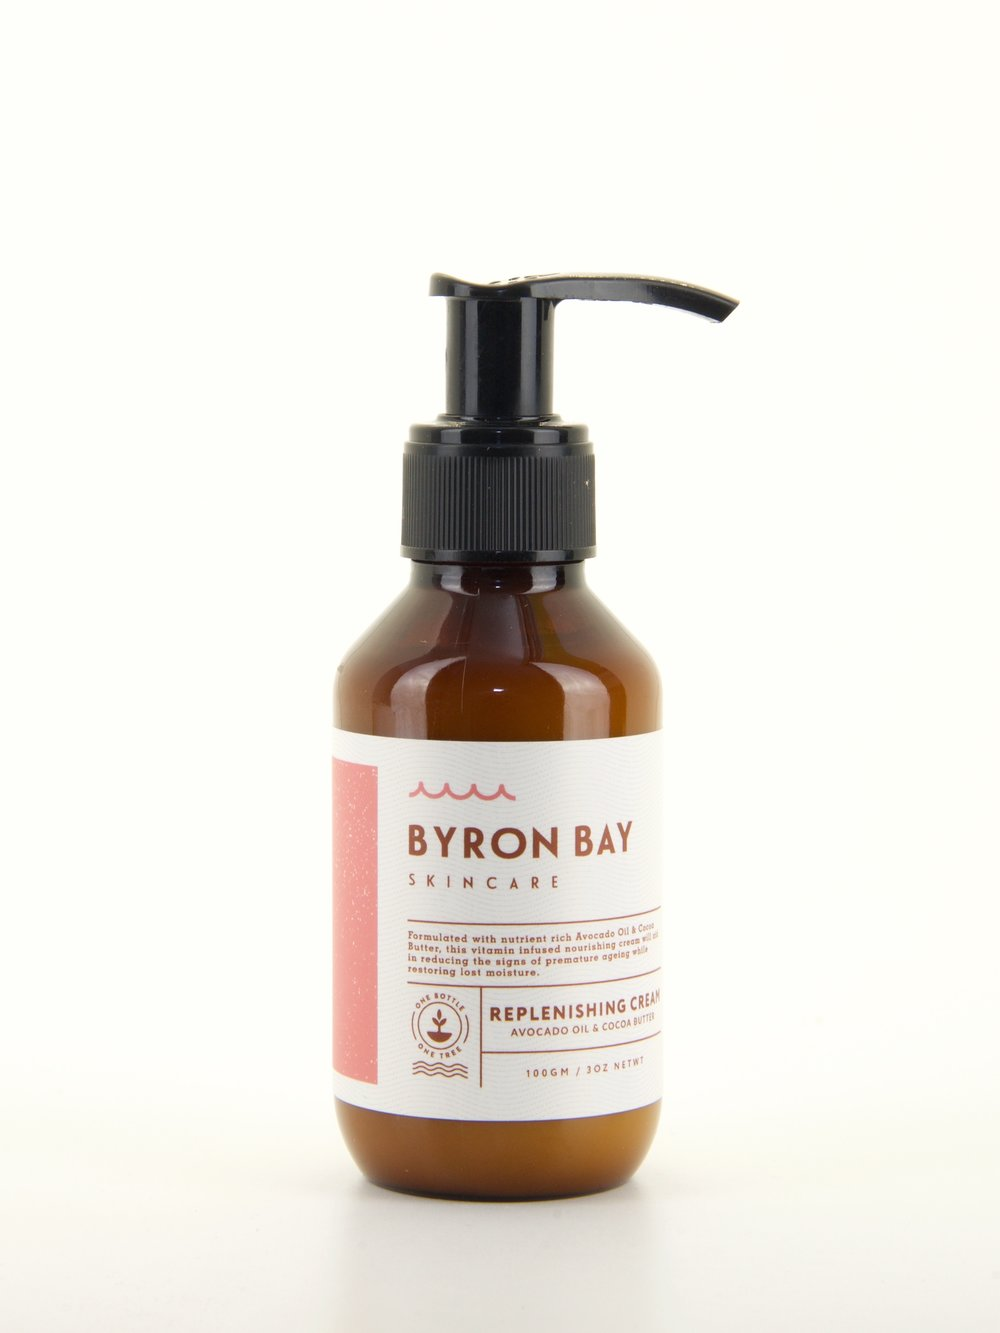 Byron Bay Skincare Replenishing Cream £25.50